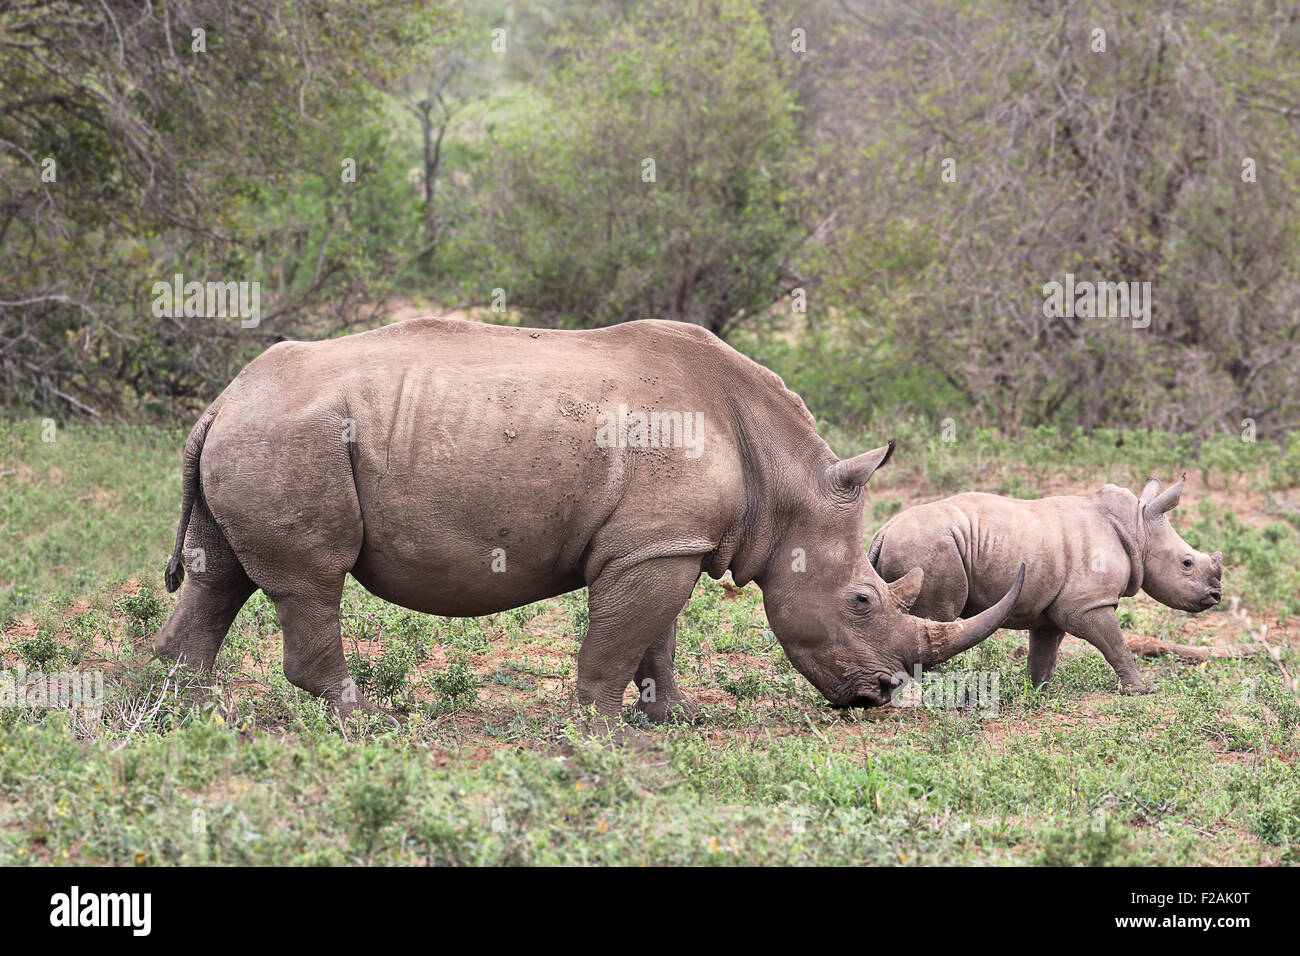 A female rhino / rhinoceros protecting her calf in South Africa - Stock Image